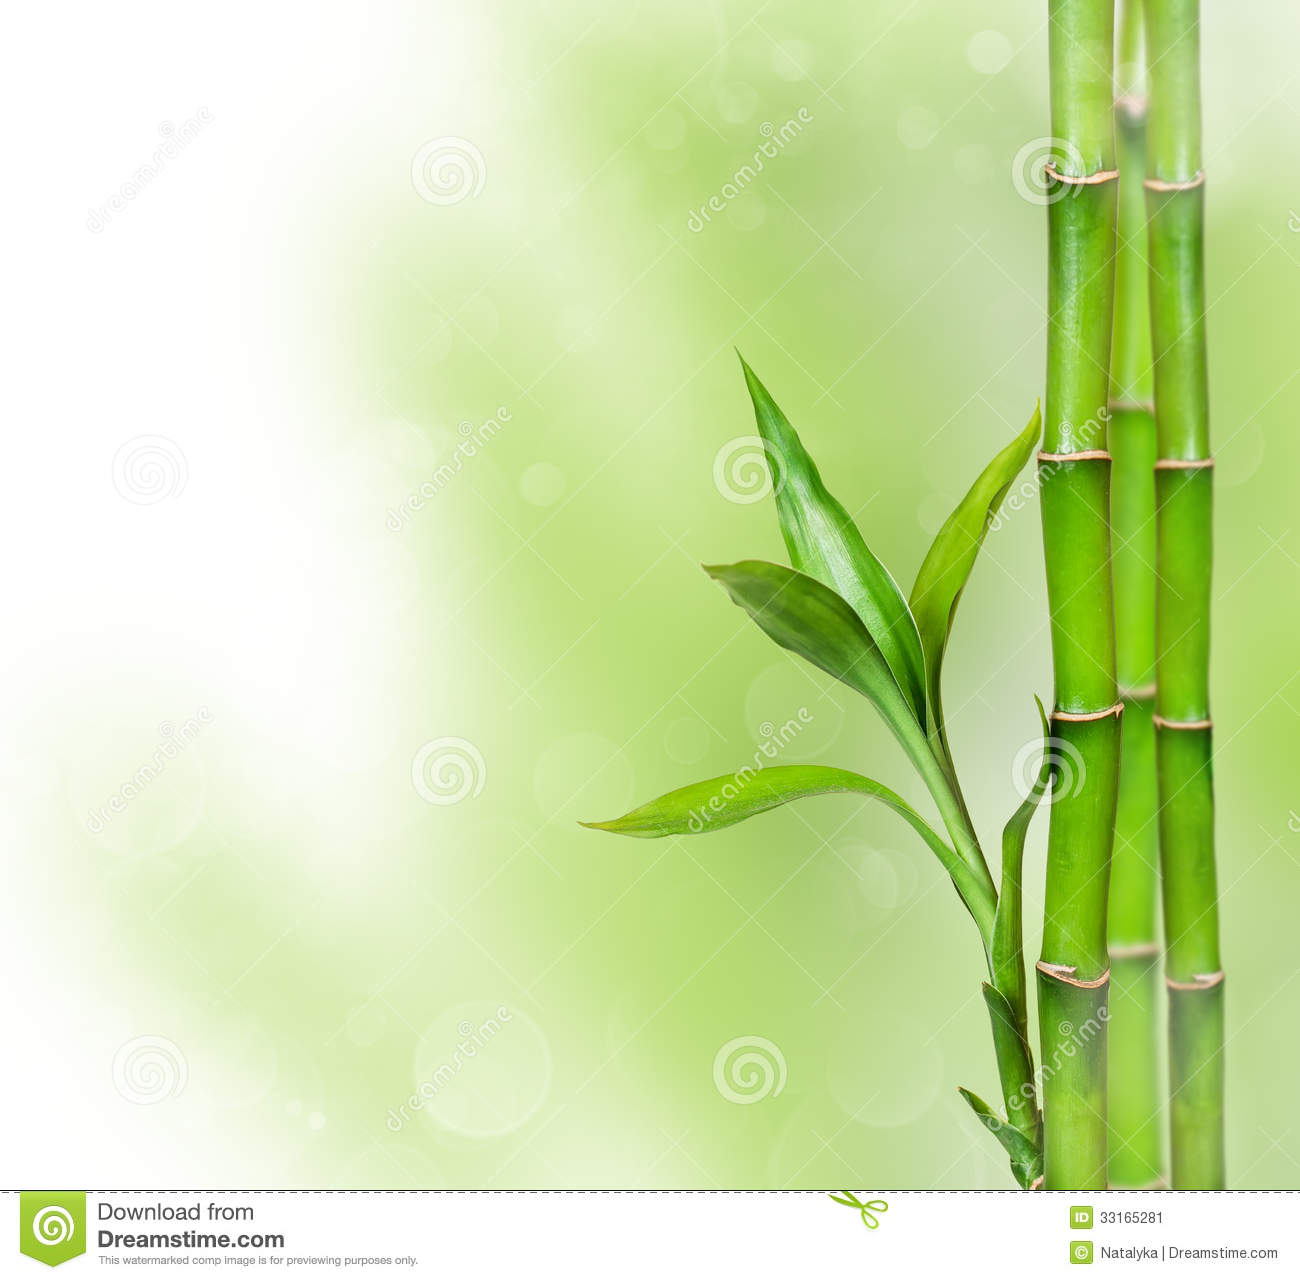 Green Background With Bamboo Stock Image - Image: 33165281